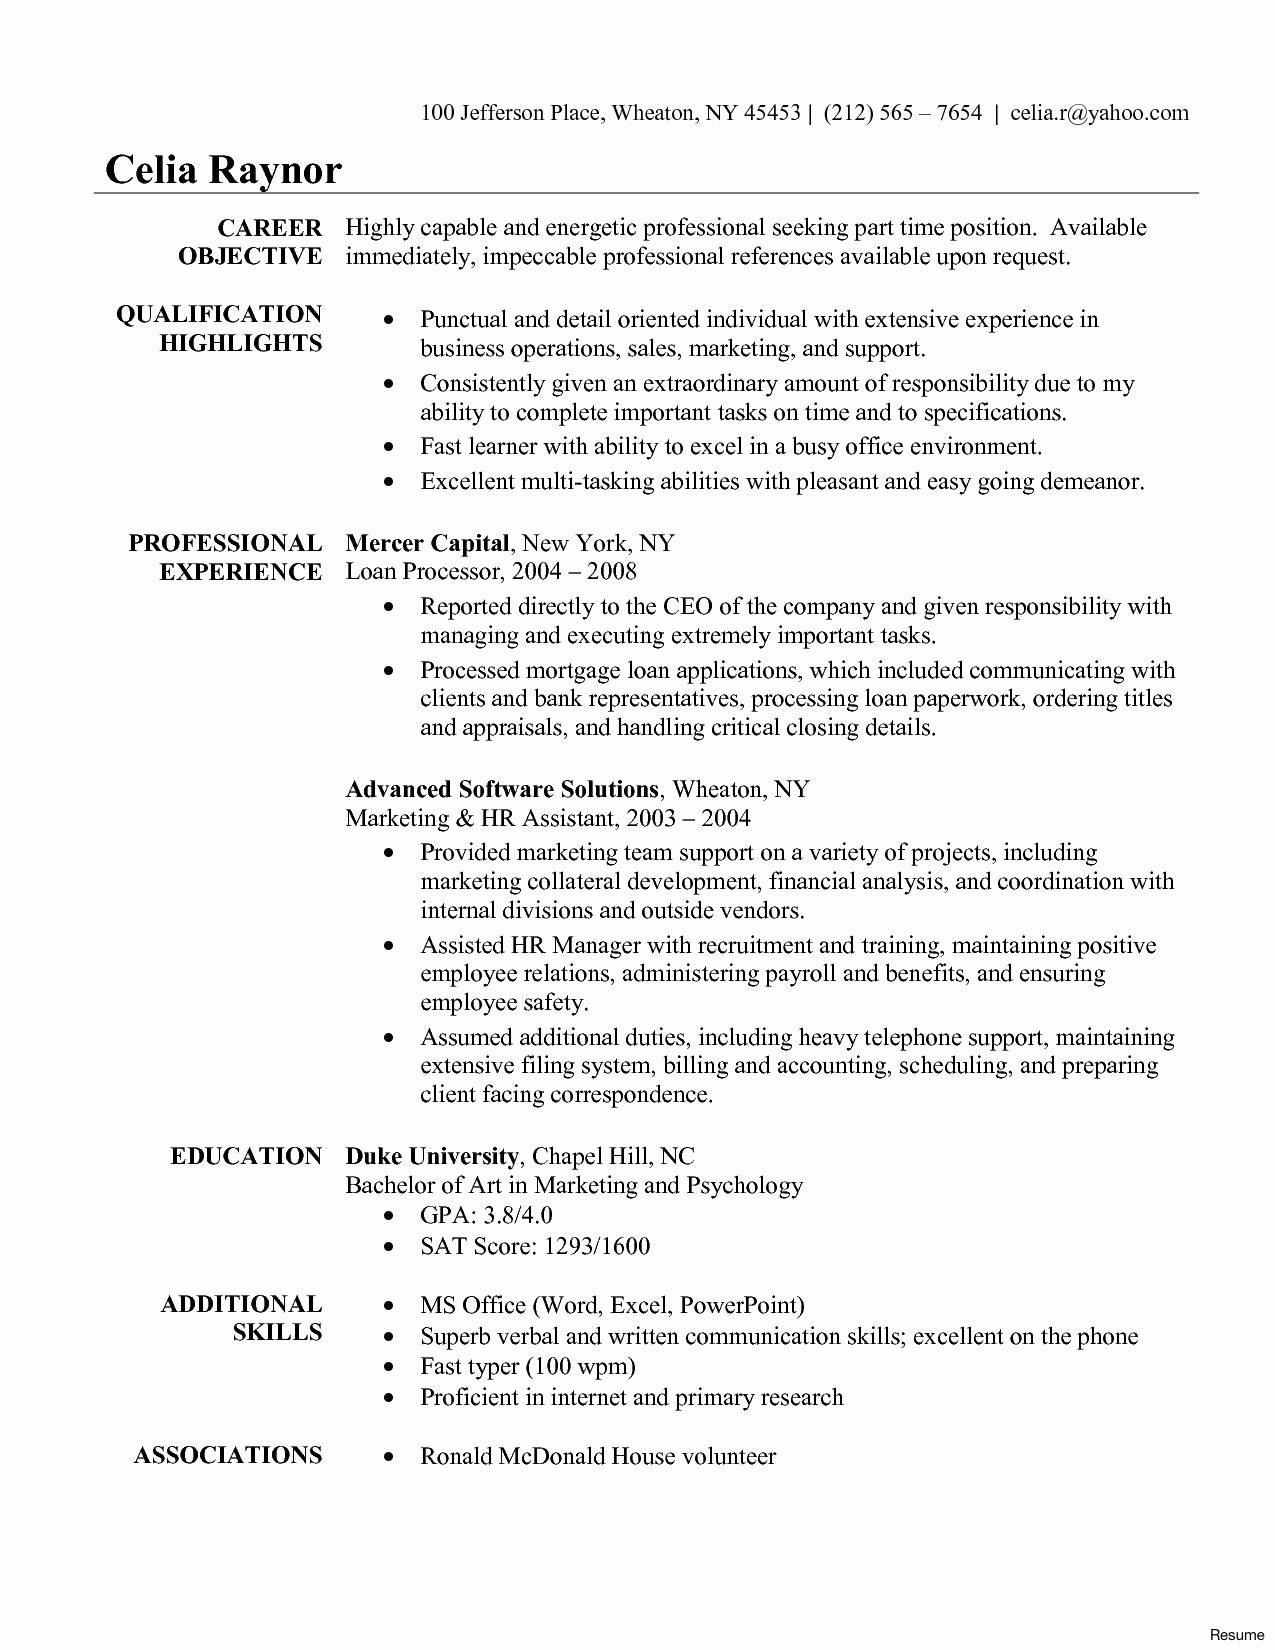 legal resume template example-Individual Development Unique Law Student Resume Template Best Resume Examples 0d 9-t